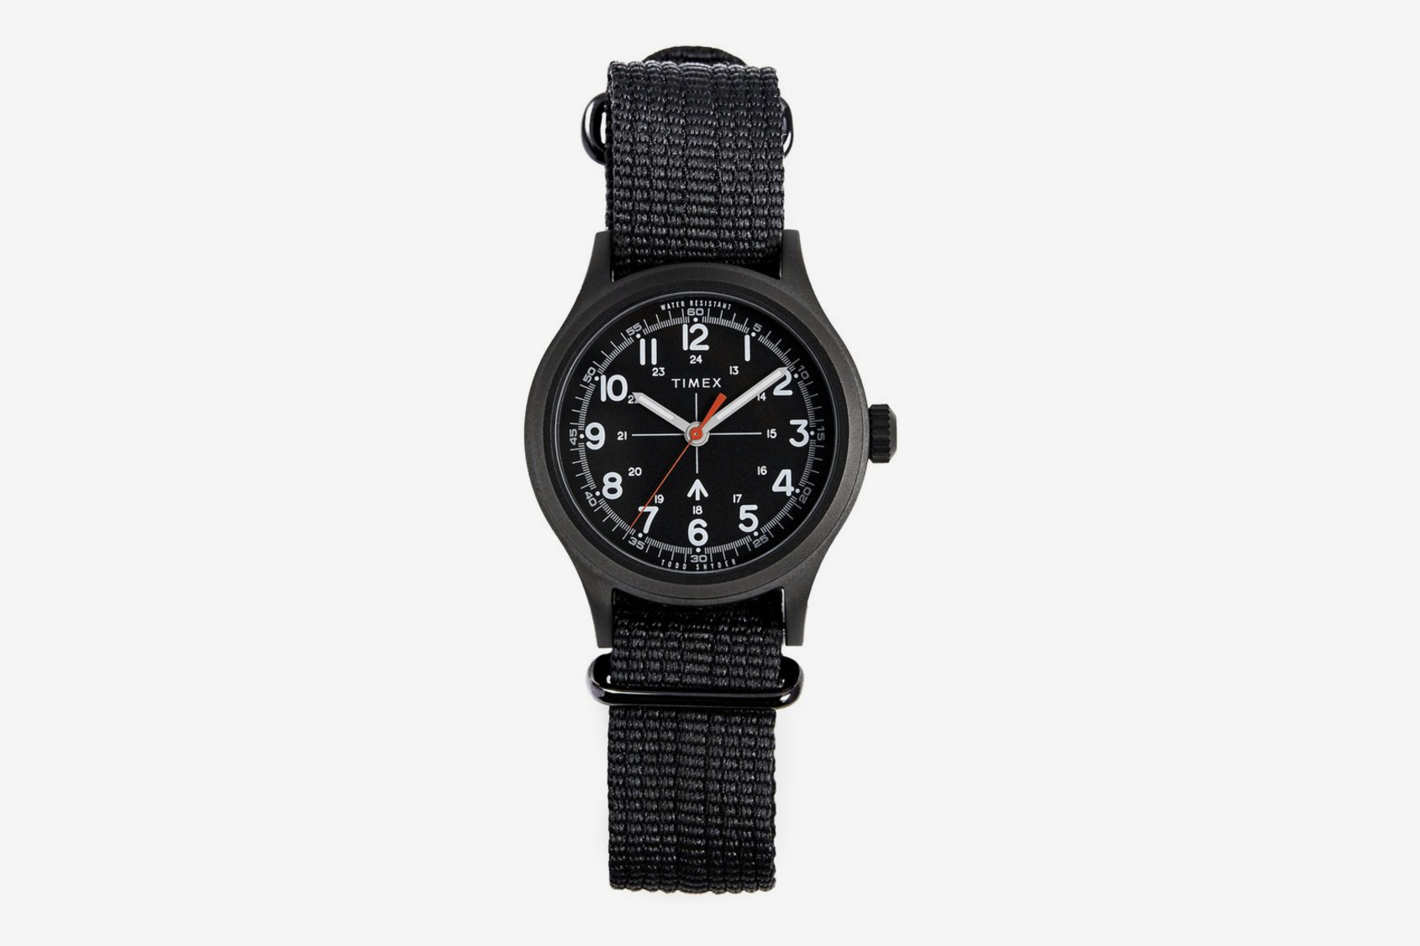 Timex Military Watch in Black